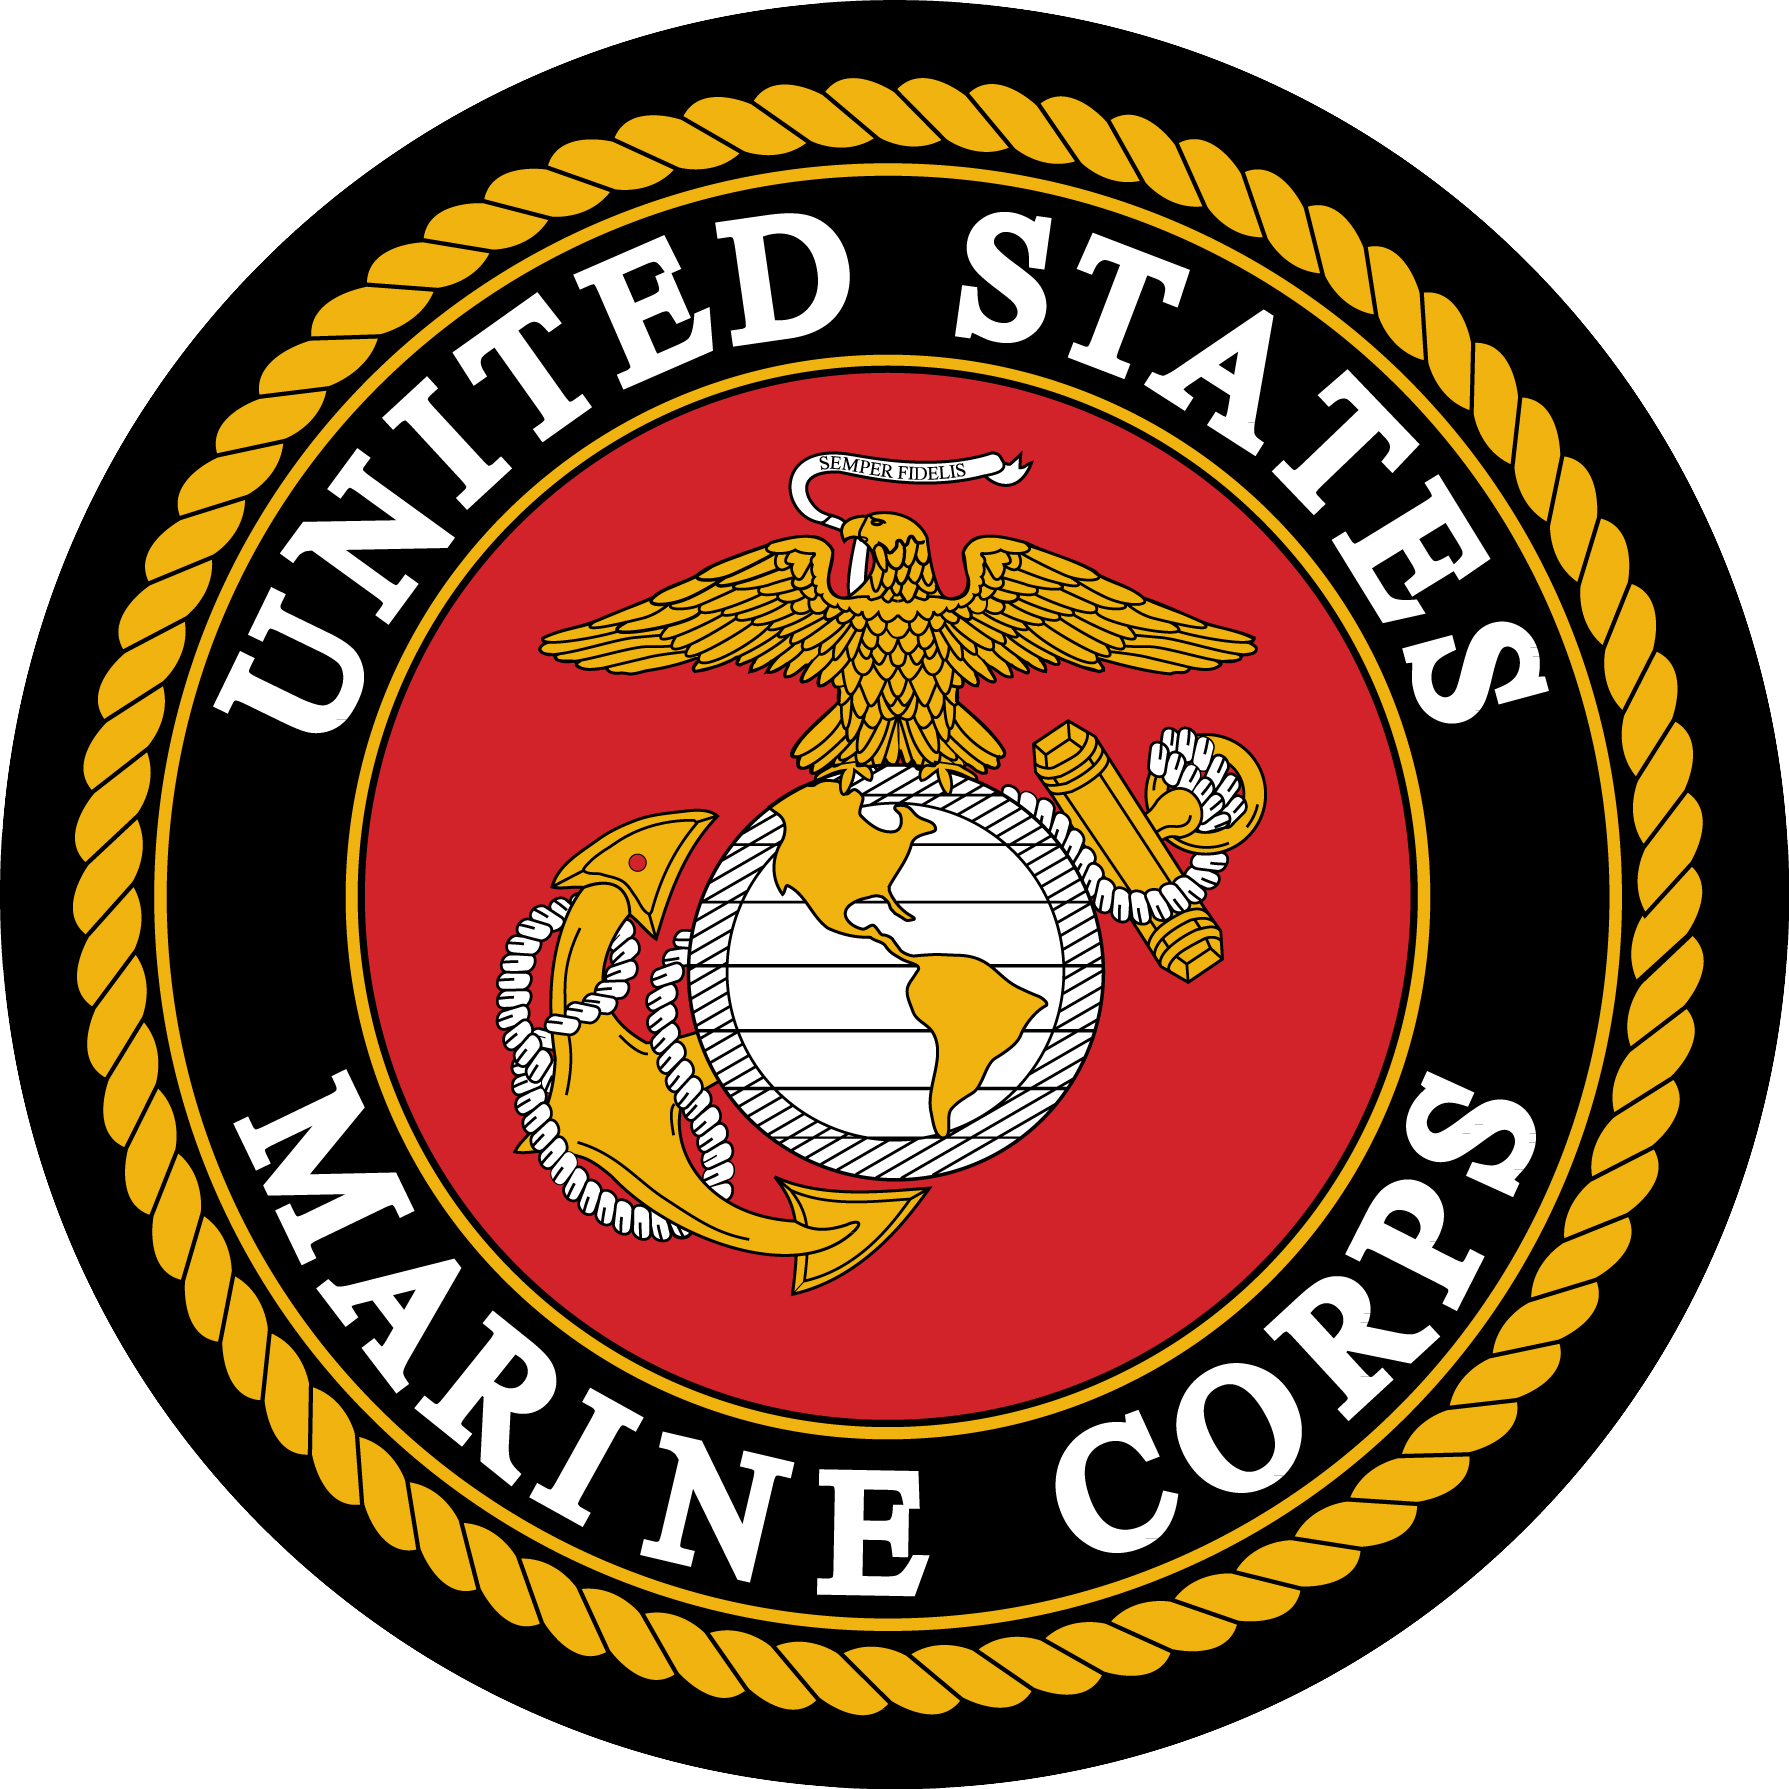 Blue marine cross clipart svg black and white download us-marine-corps-logo-clipart-1.png (1789×1789) | The Hero ... svg black and white download